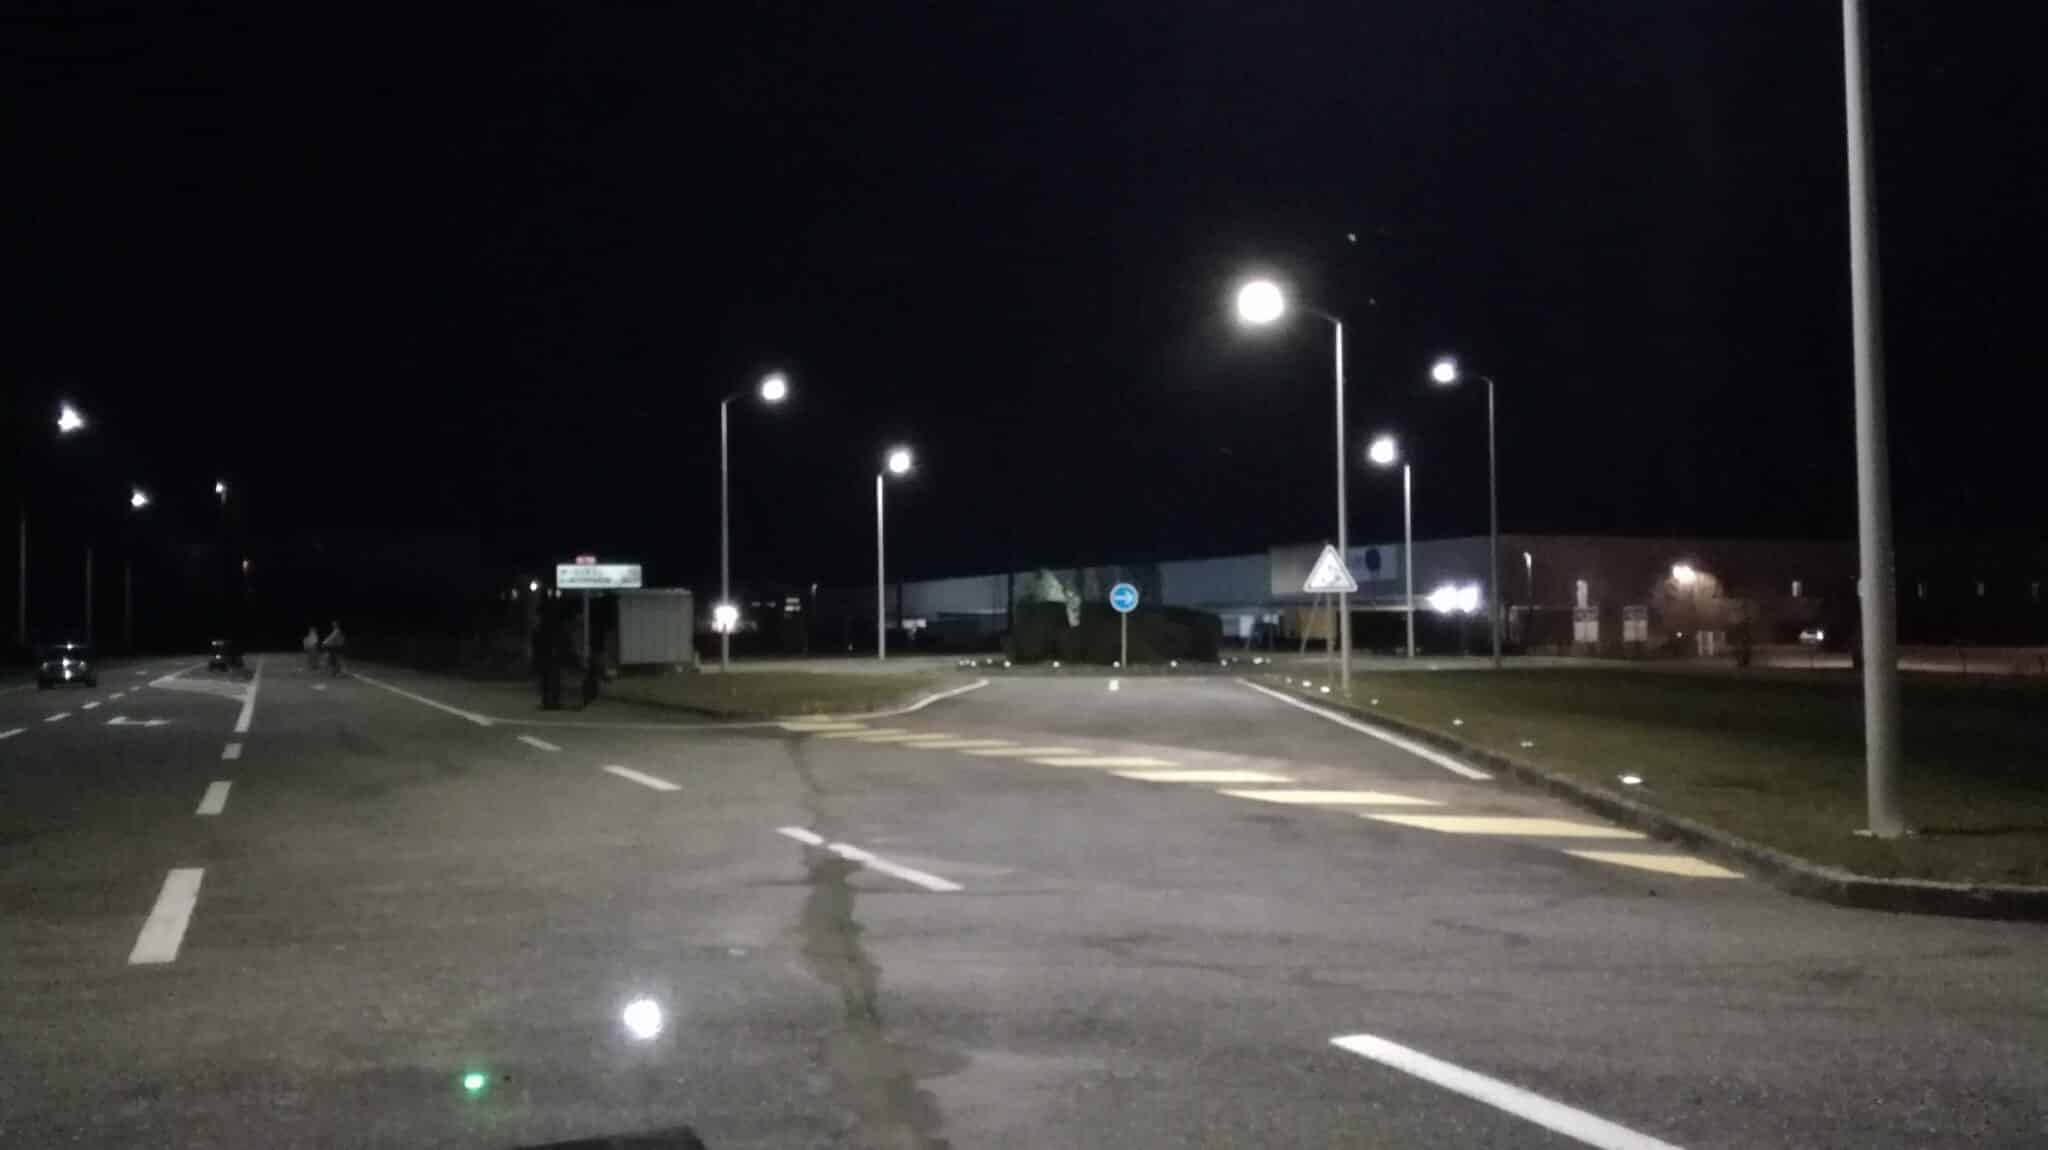 philips lighting olac route